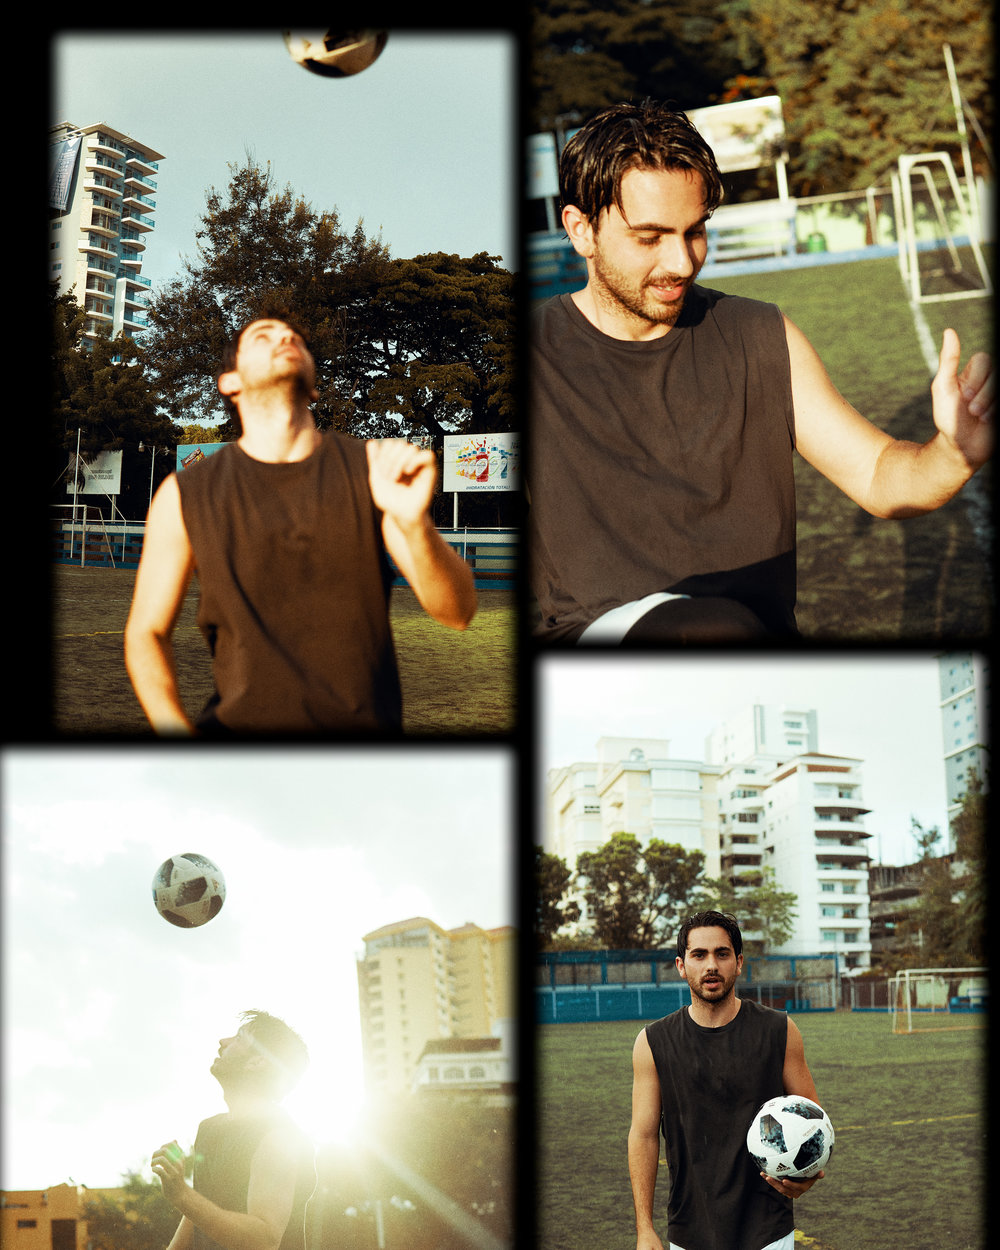 axel-photo-soccer.jpg